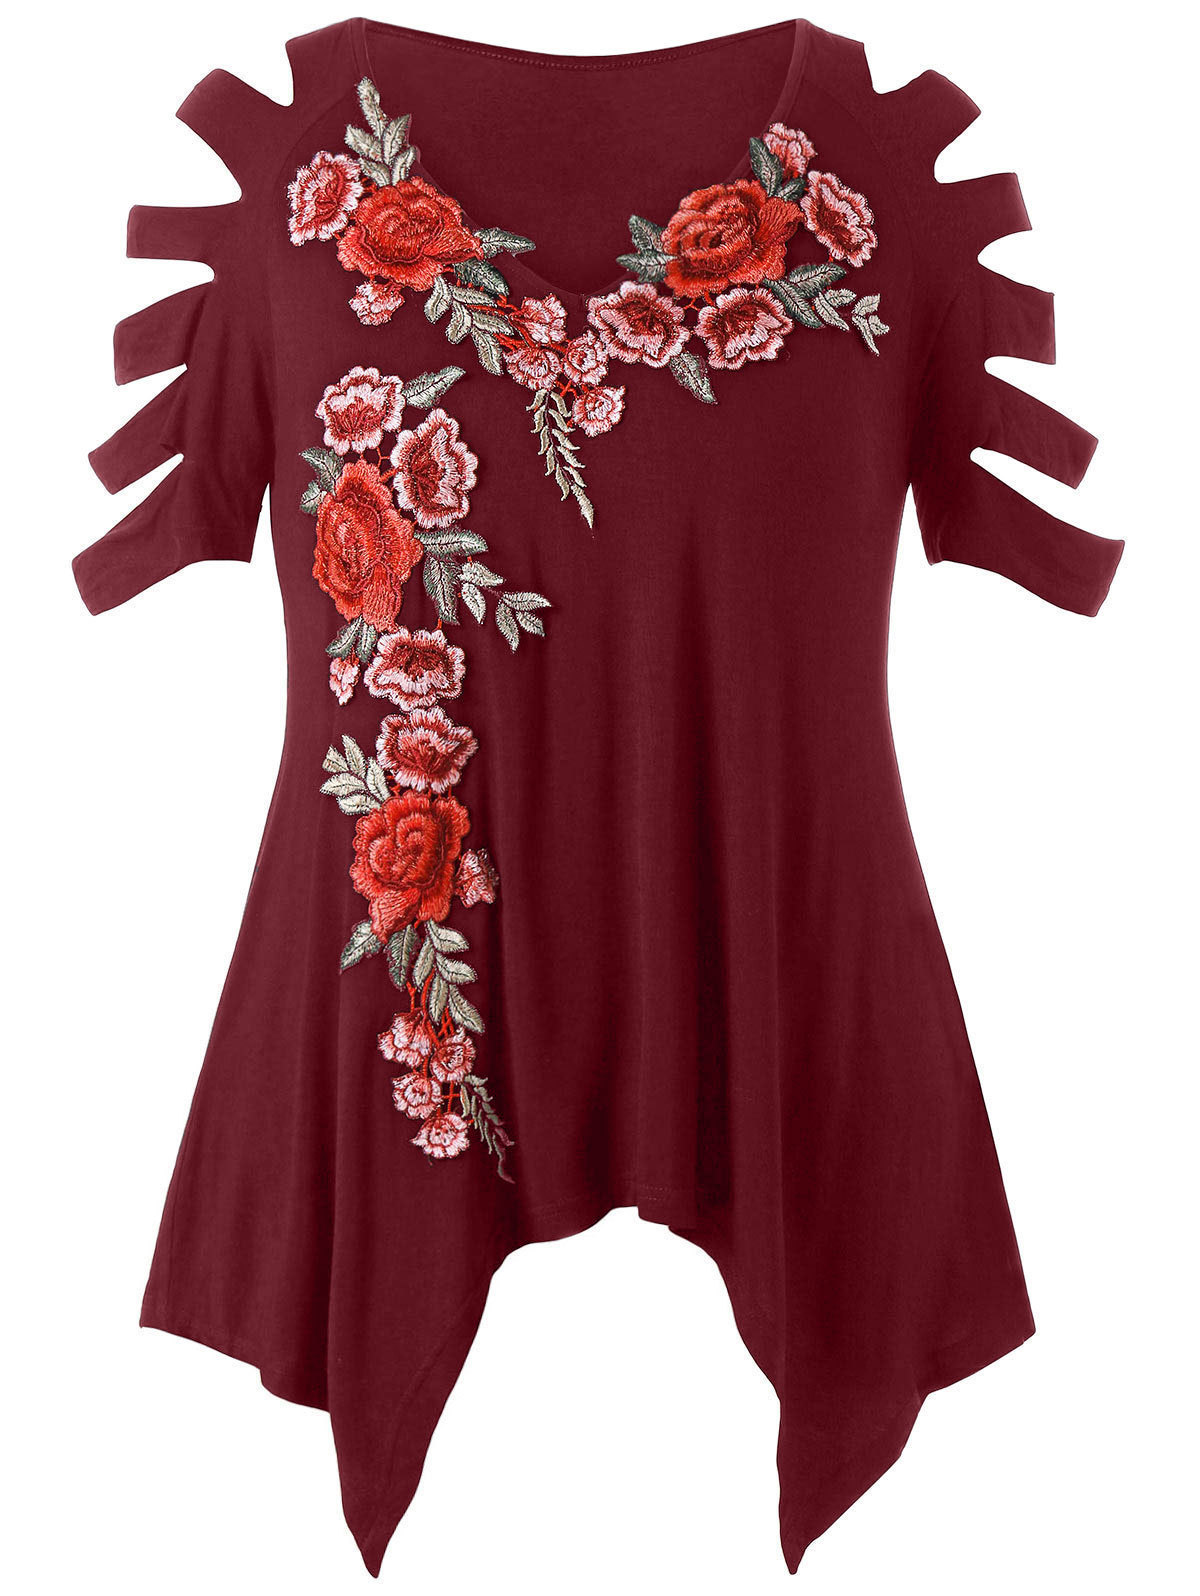 Wipalo Plus Size 5xl T-shirt Women Ladder Cut Embroidery T Shirt Summer Tops Causal V-neck Half Sleeve T-shirts Ladies Clothes Y19060601